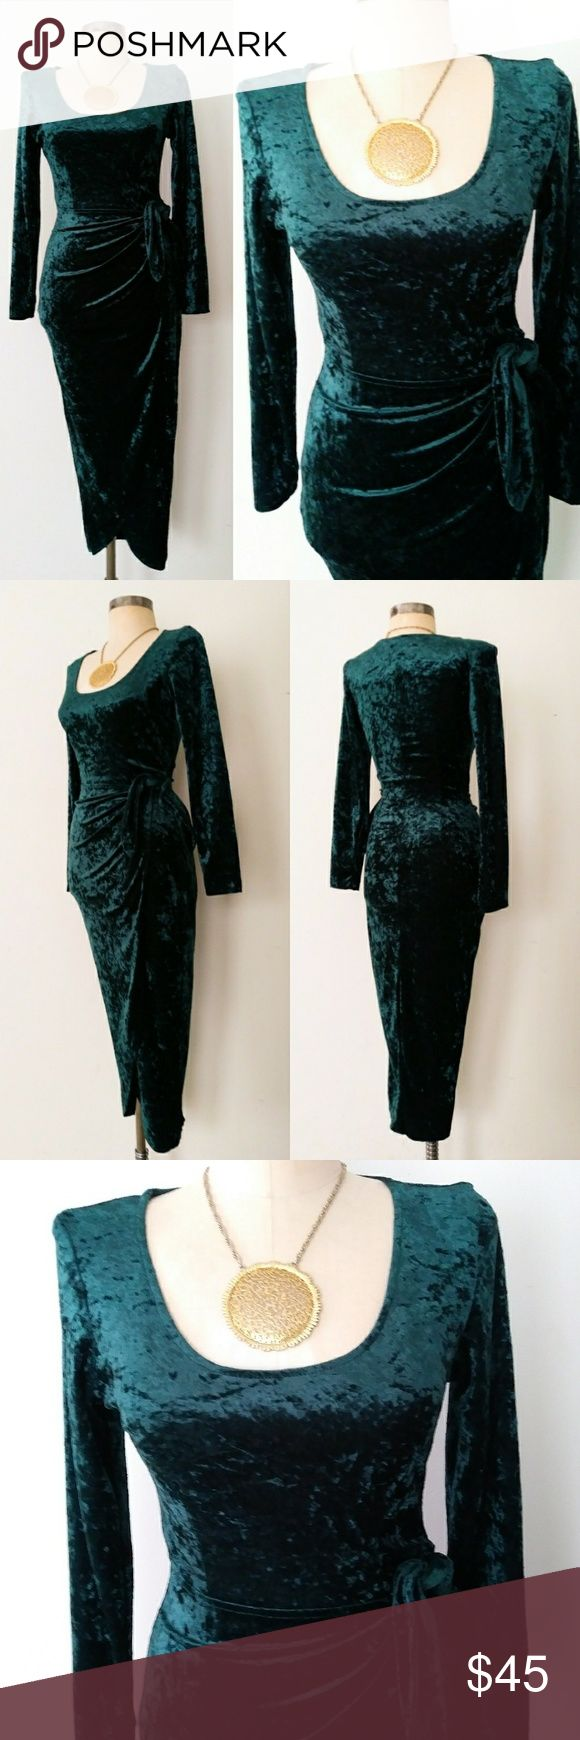 90s Vintage Emerald Green Velvet Sarong Dress Sm Beautiful beautiful vintage 90s emerald green velvet dress. Very figure flattering fit with scoop neckline, long sleeves, and curve-hugging sarong skirt. Excellent condition. Fit for an XS. Vintage Dresses